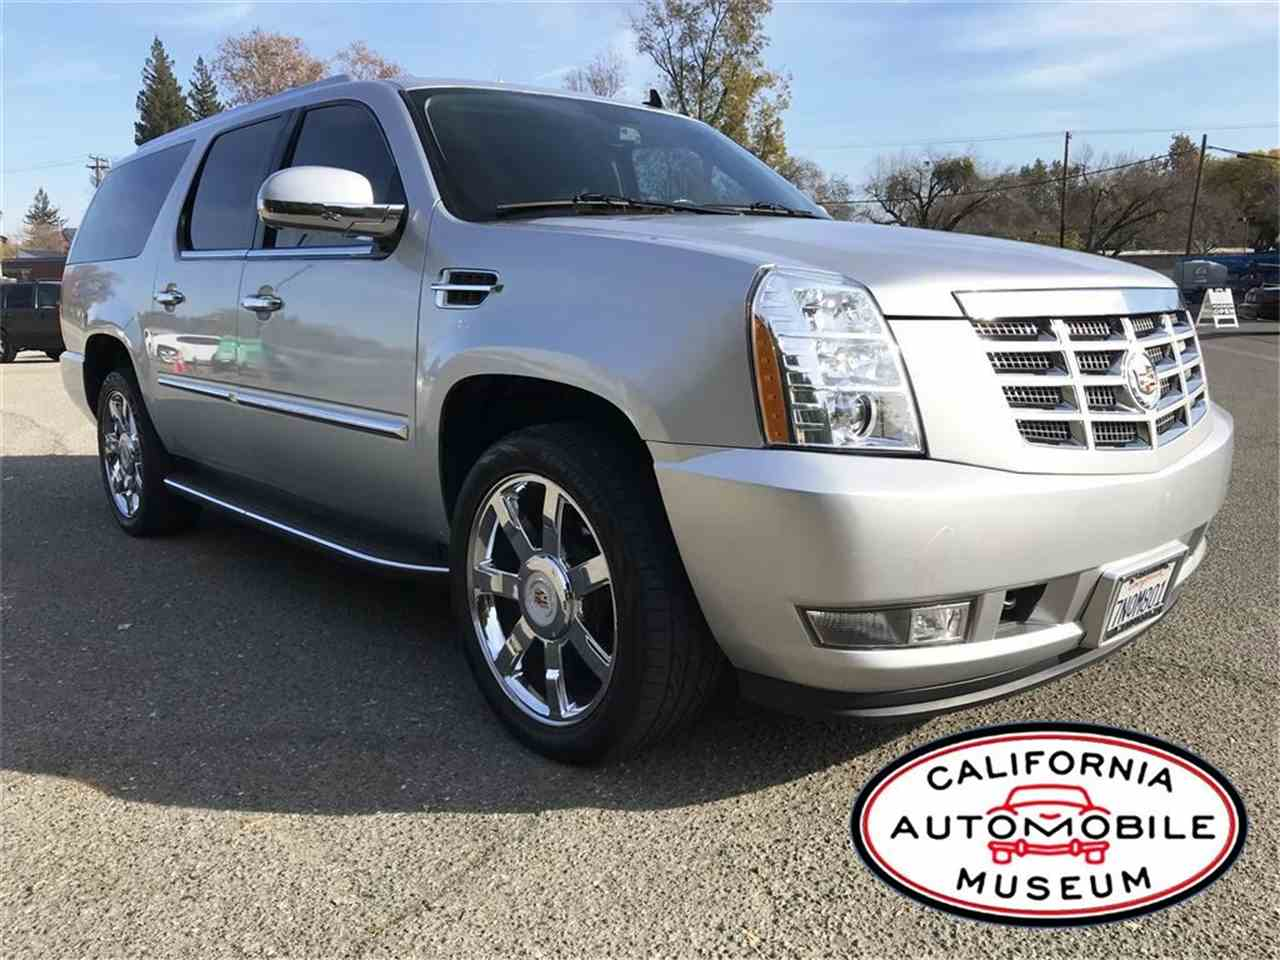 fine stock margate sale fl escalade west cadillac for luxury cars palm carsforsale suv in used esv florida